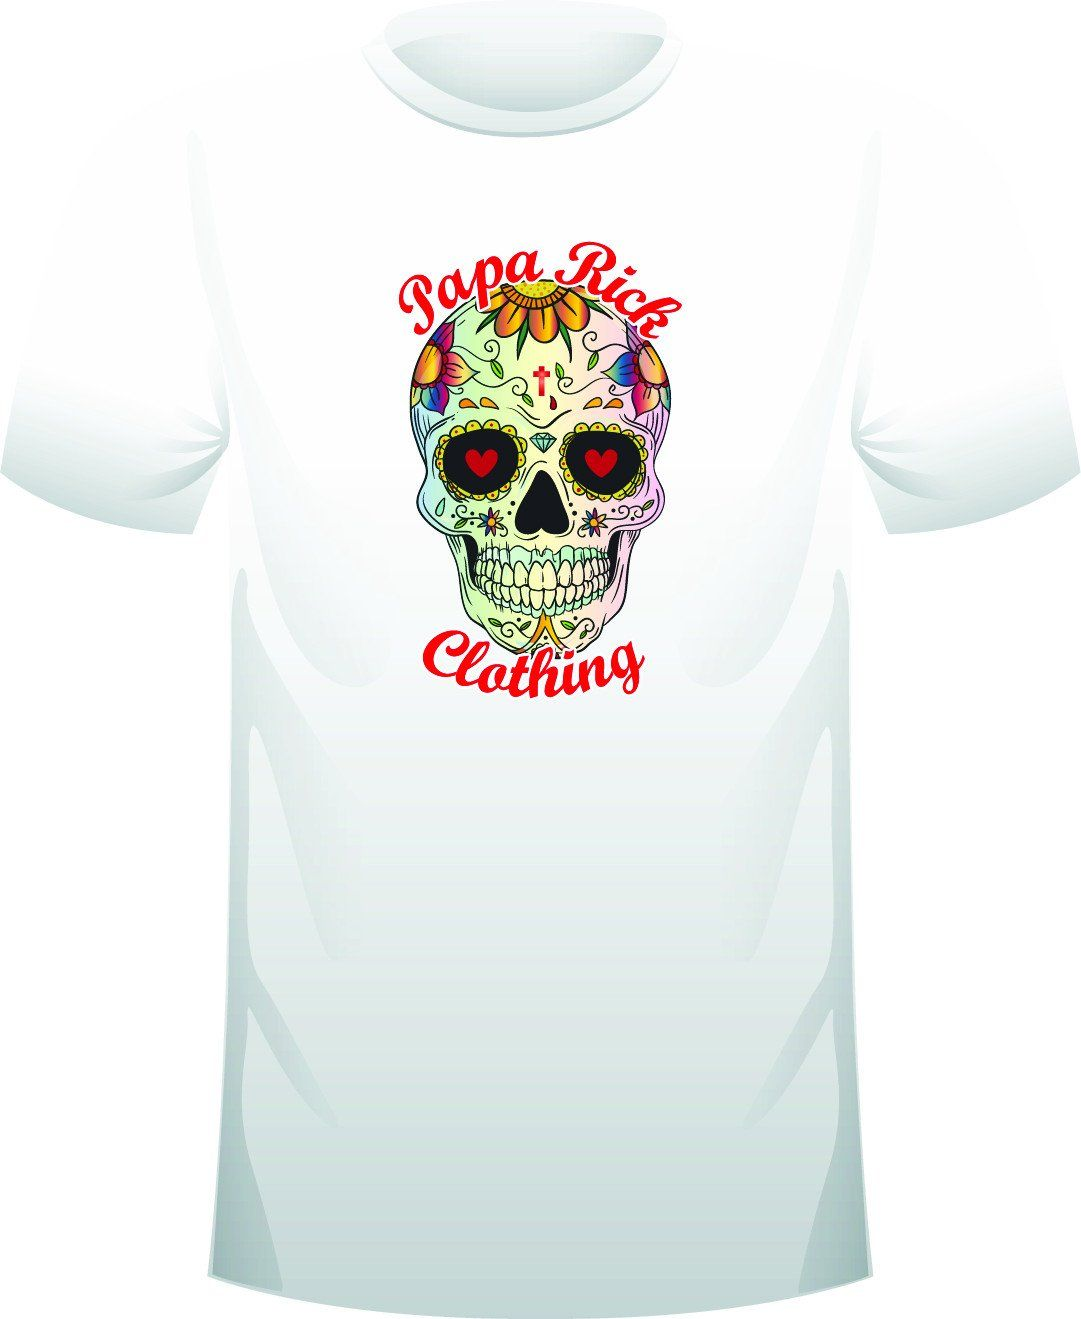 5b8f6670e Short Sleeve T-Shirt - Papa Rick Clothing Sugar Skull 3 | Products ...